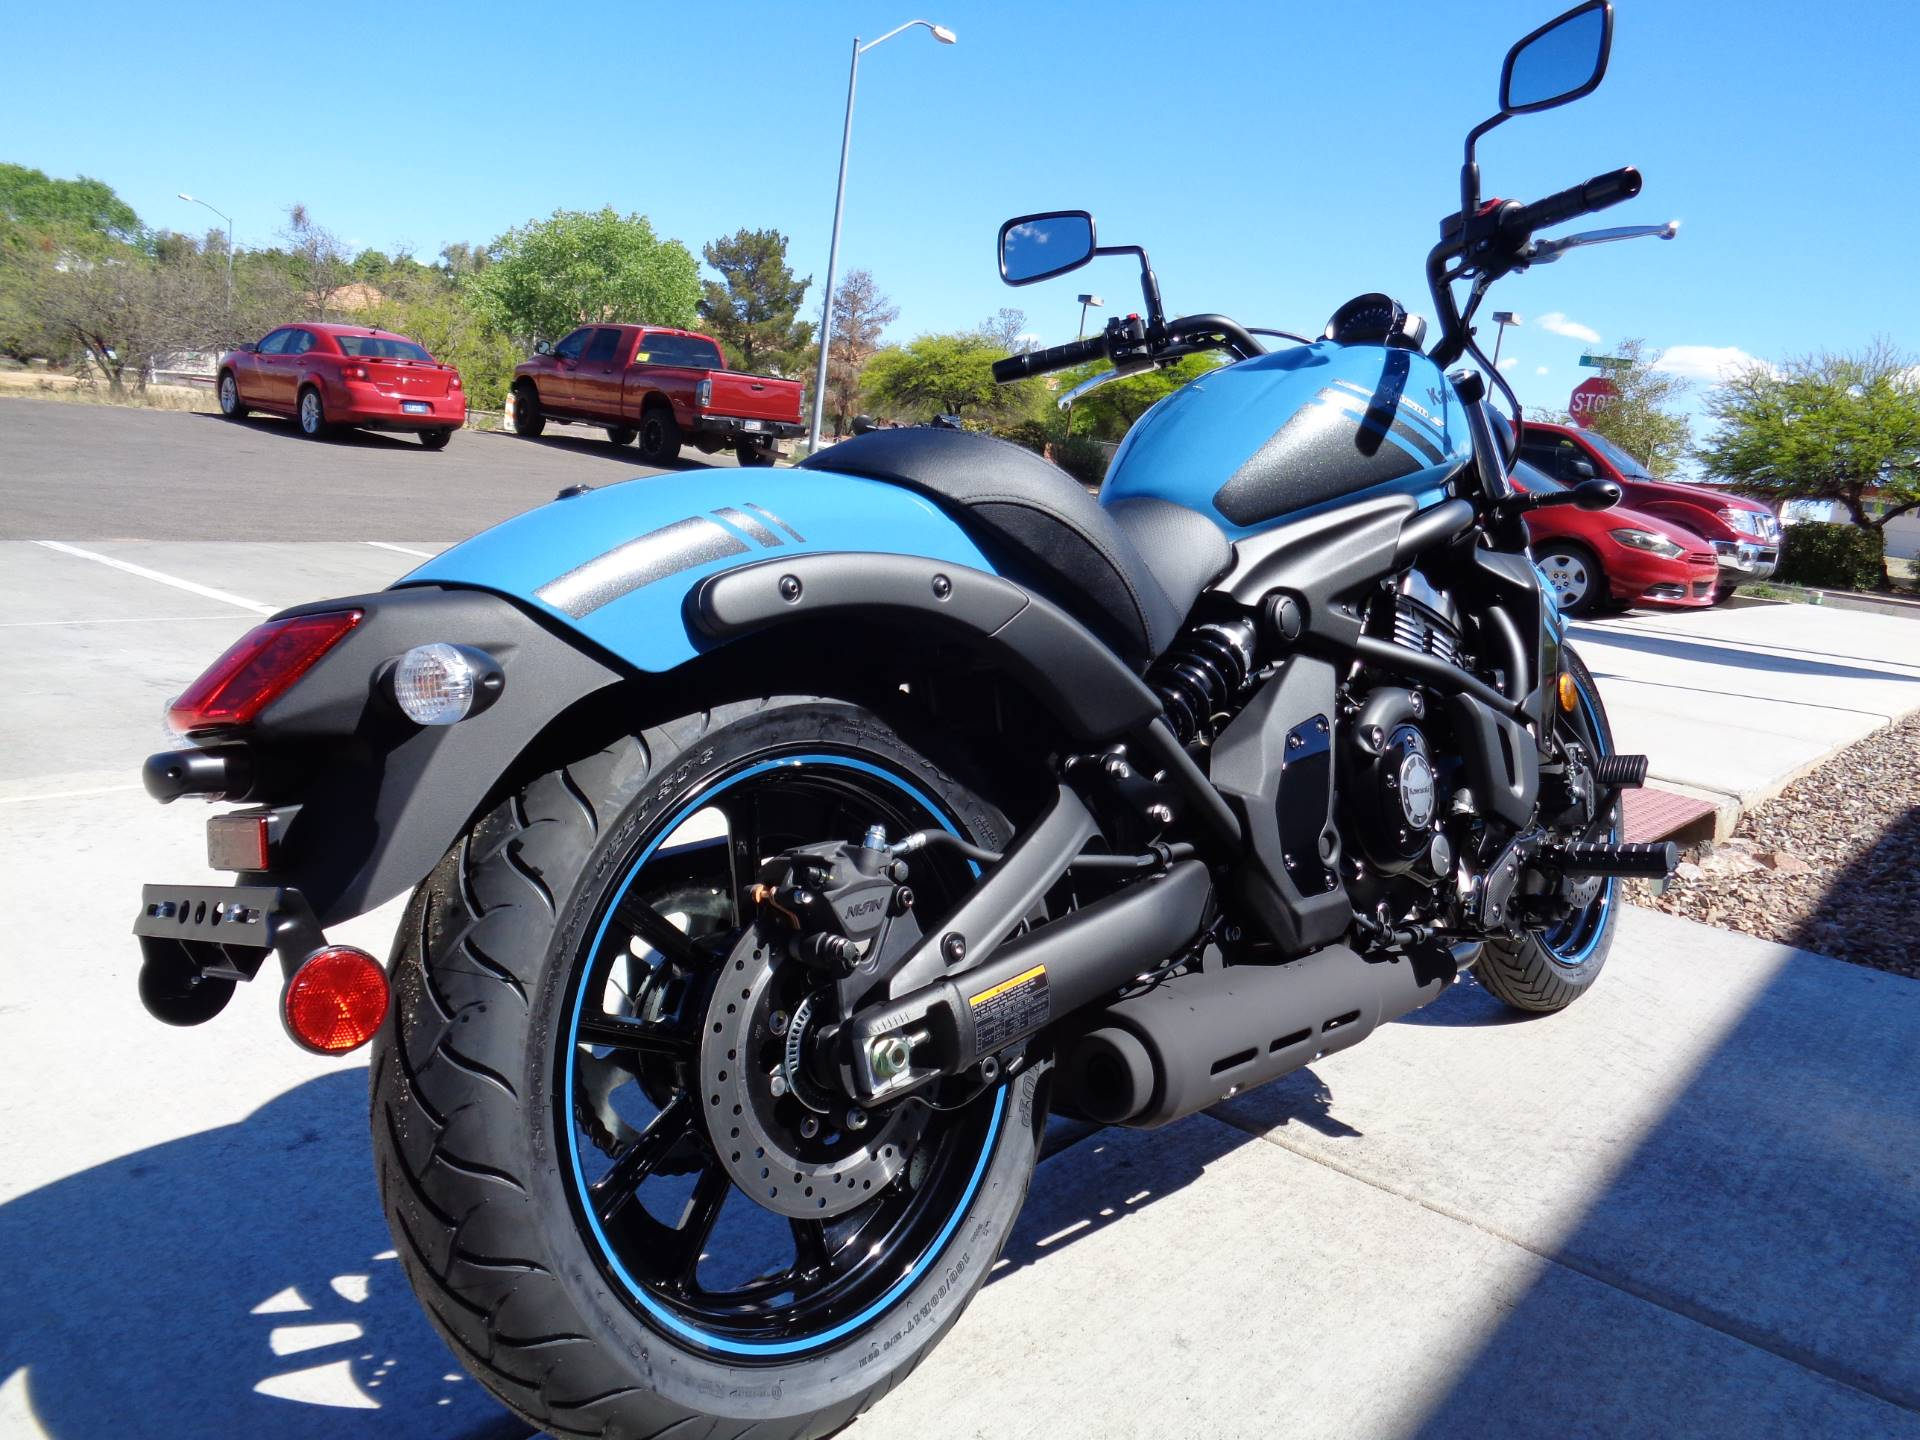 2019 Kawasaki Vulcan S ABS in Sierra Vista, Arizona - Photo 6